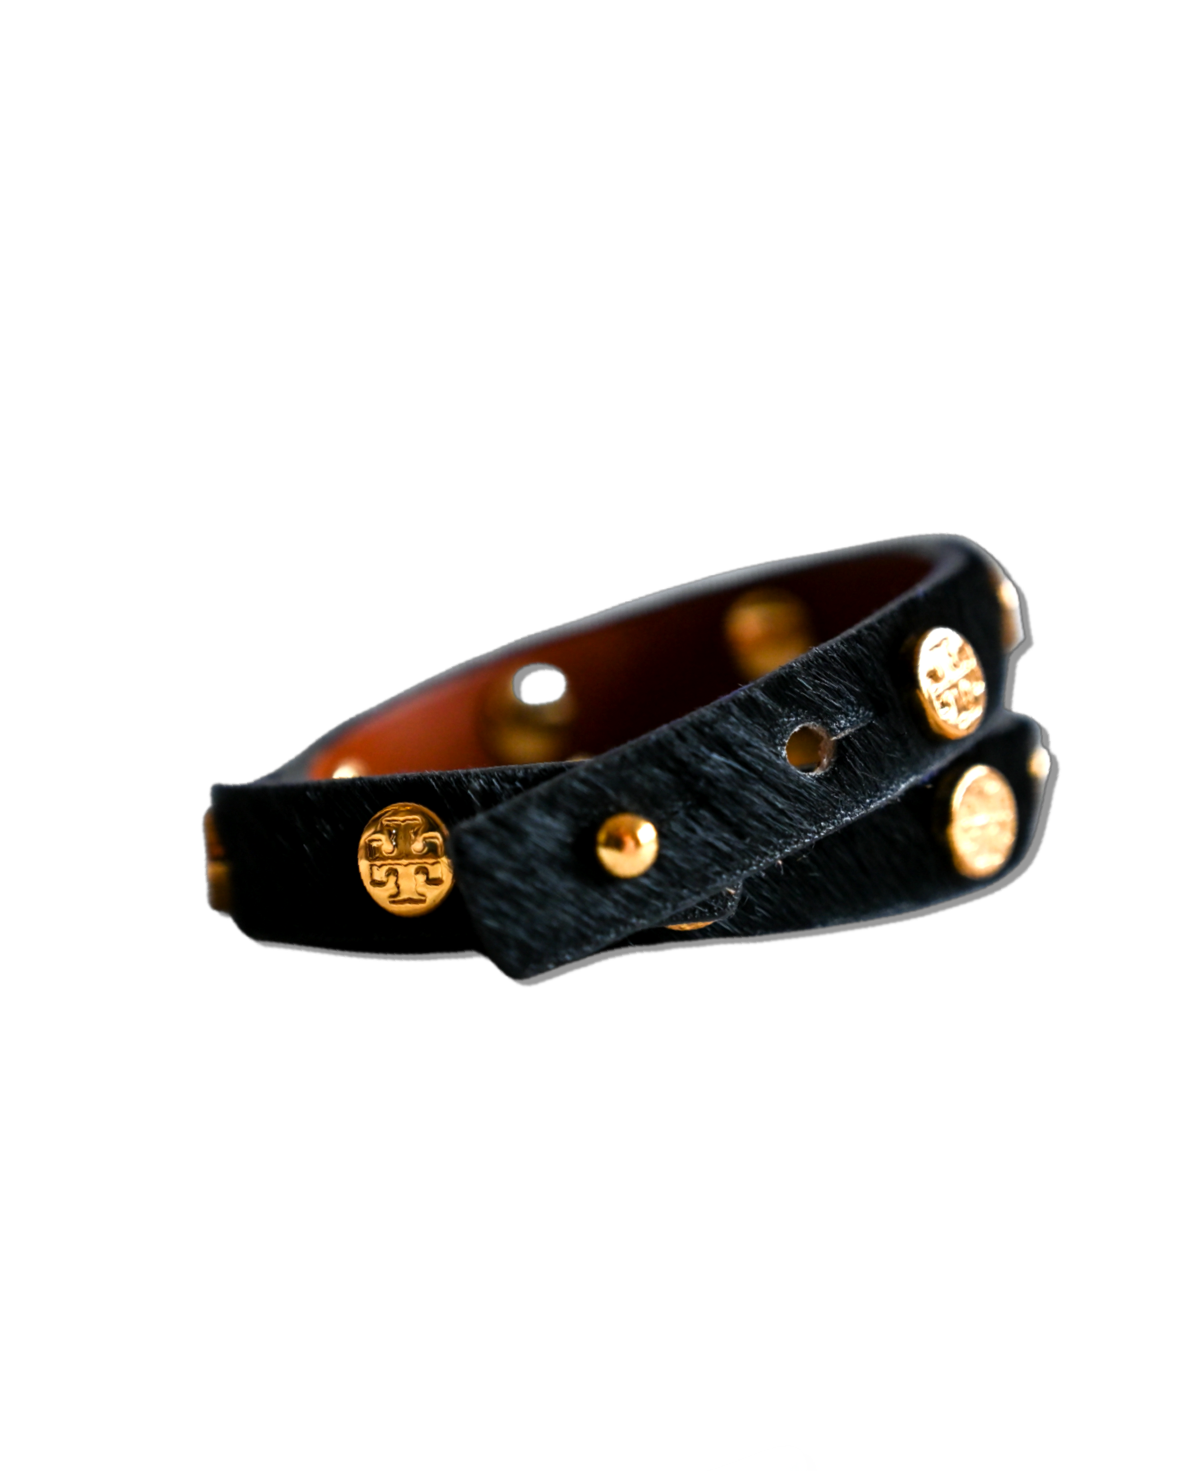 Tory Burch Armband Ponyfell